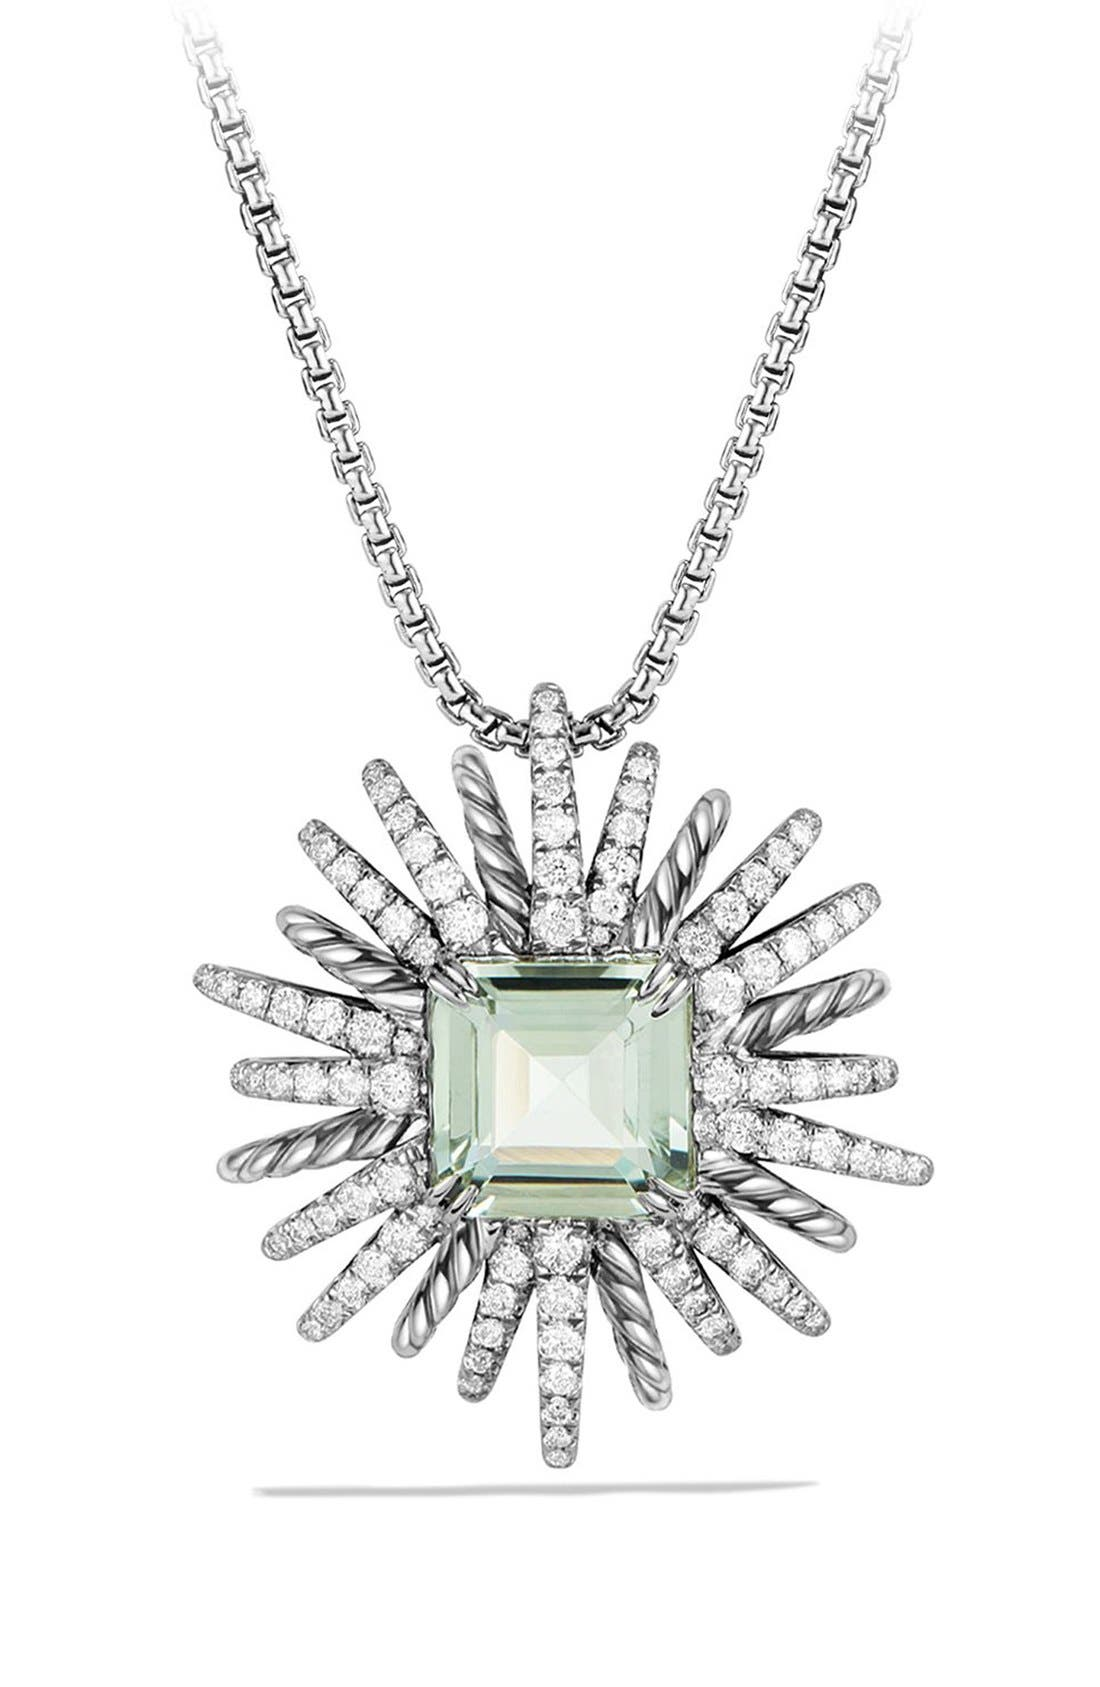 Alternate Image 1 Selected - David Yurman 'Starburst' Necklace with Diamonds in Silver